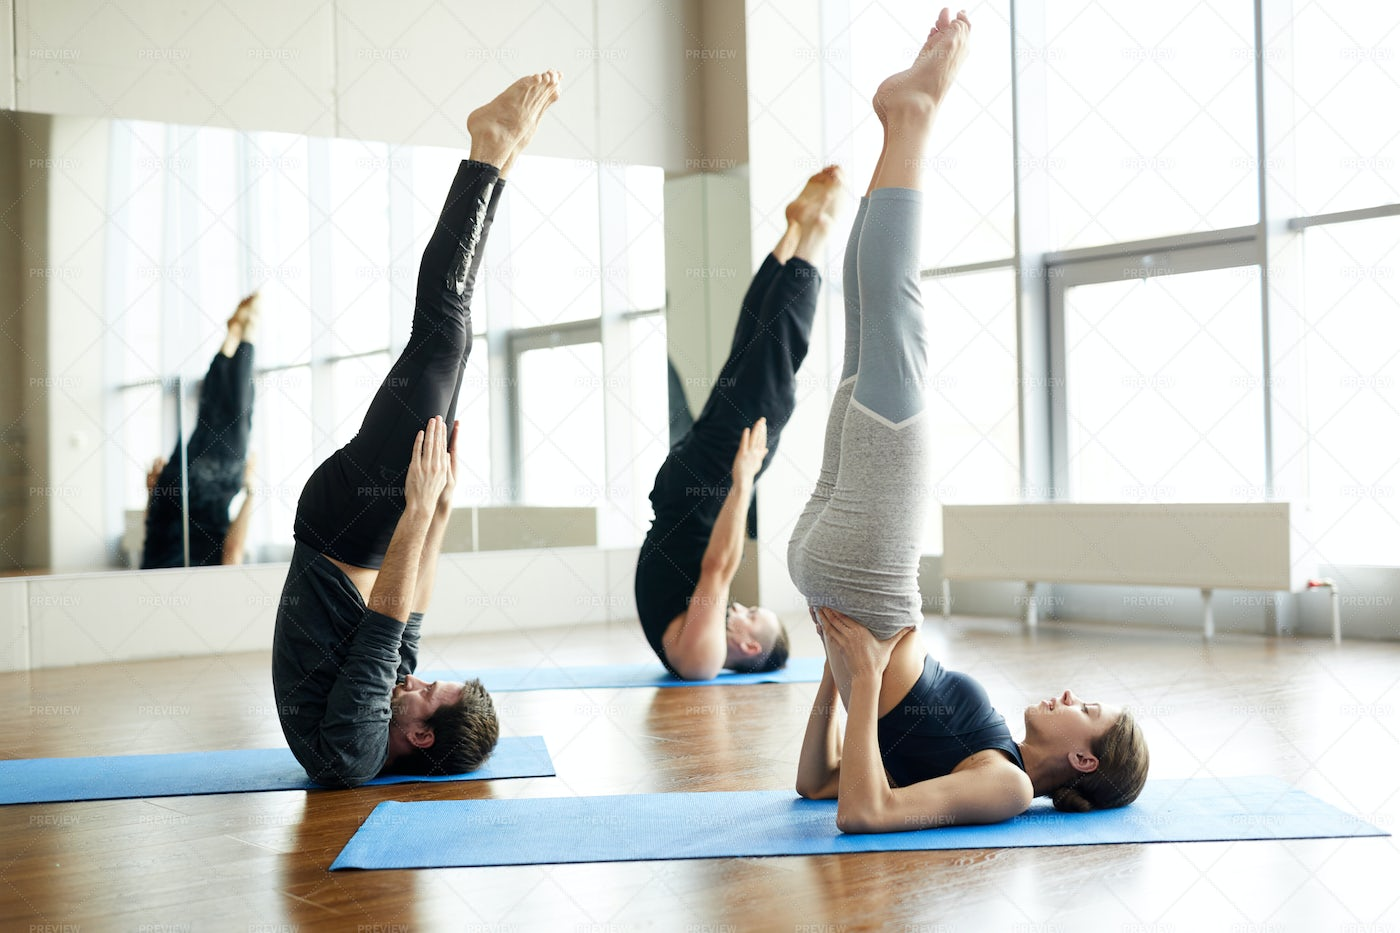 Practicing Candle Pose At Yoga...: Stock Photos